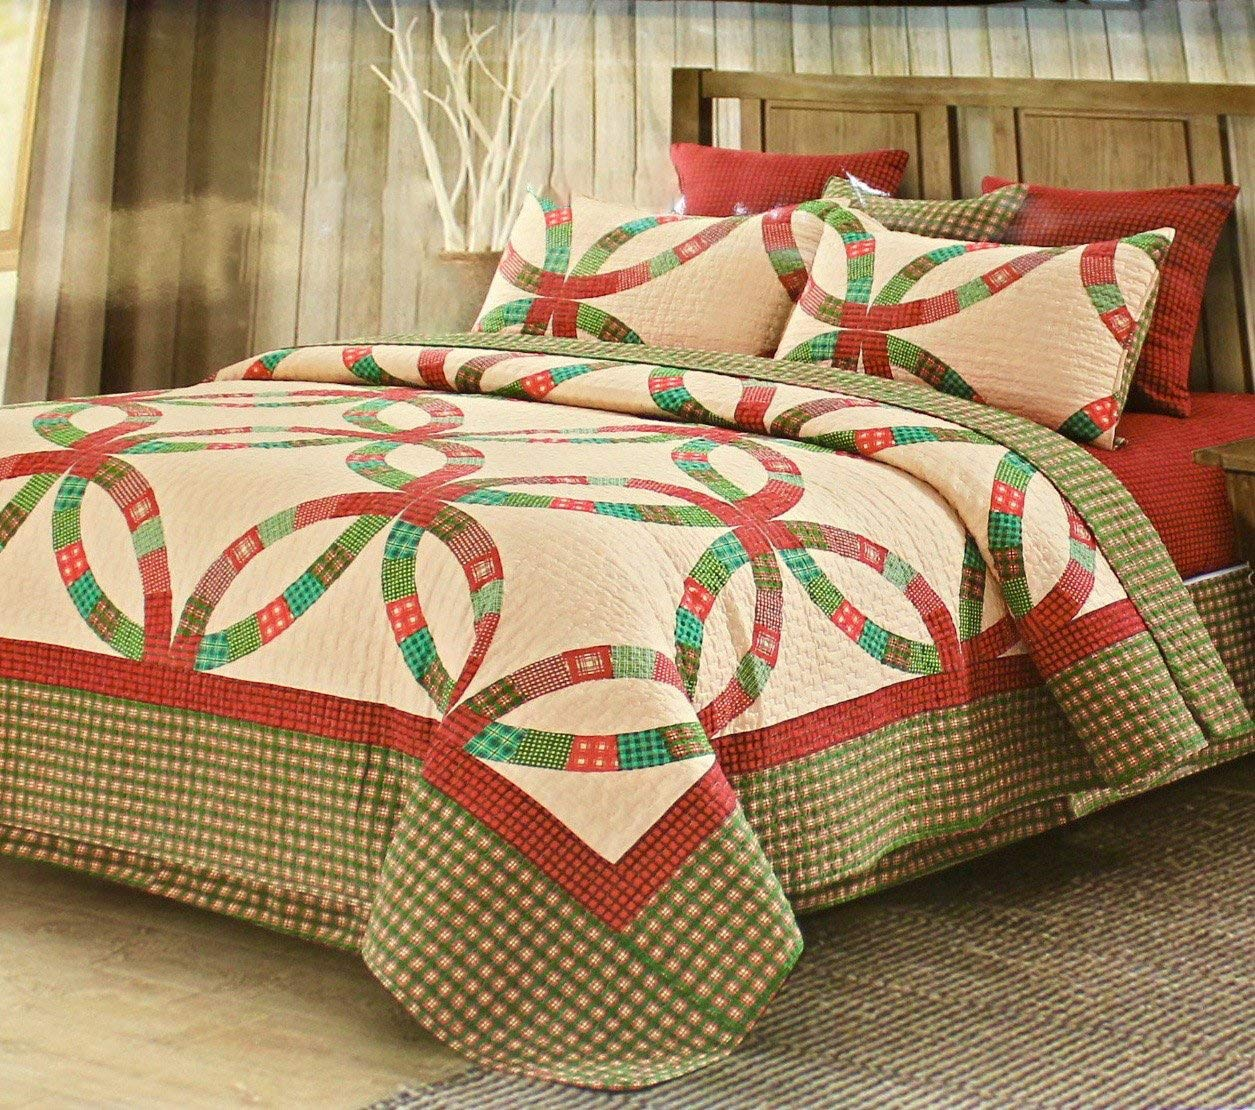 Holiday Home's Vintage Quilt Set - Christmas Bed Quits